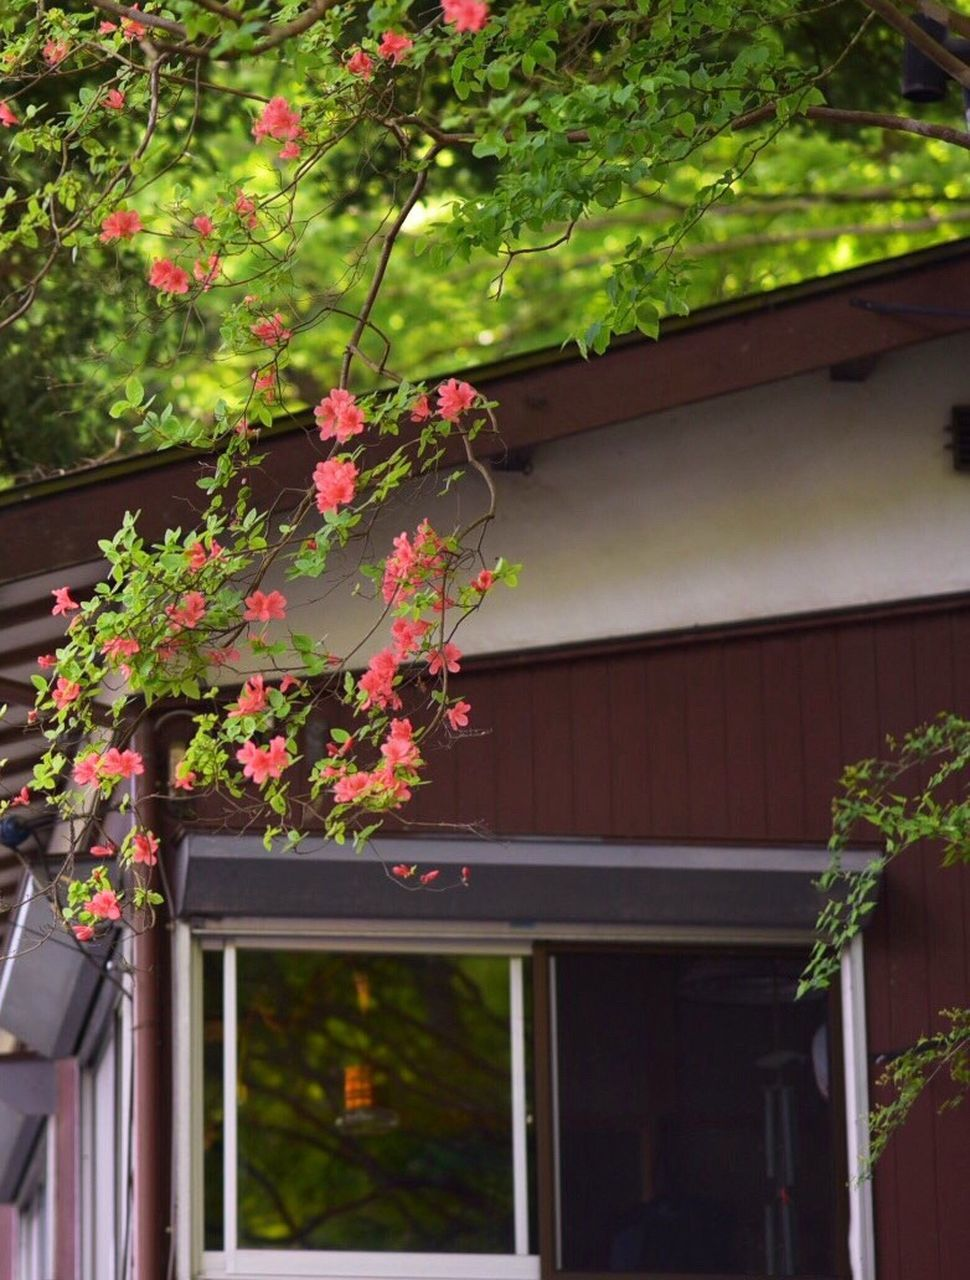 growth, architecture, building exterior, plant, built structure, tree, outdoors, house, flower, no people, nature, day, beauty in nature, low angle view, window box, freshness